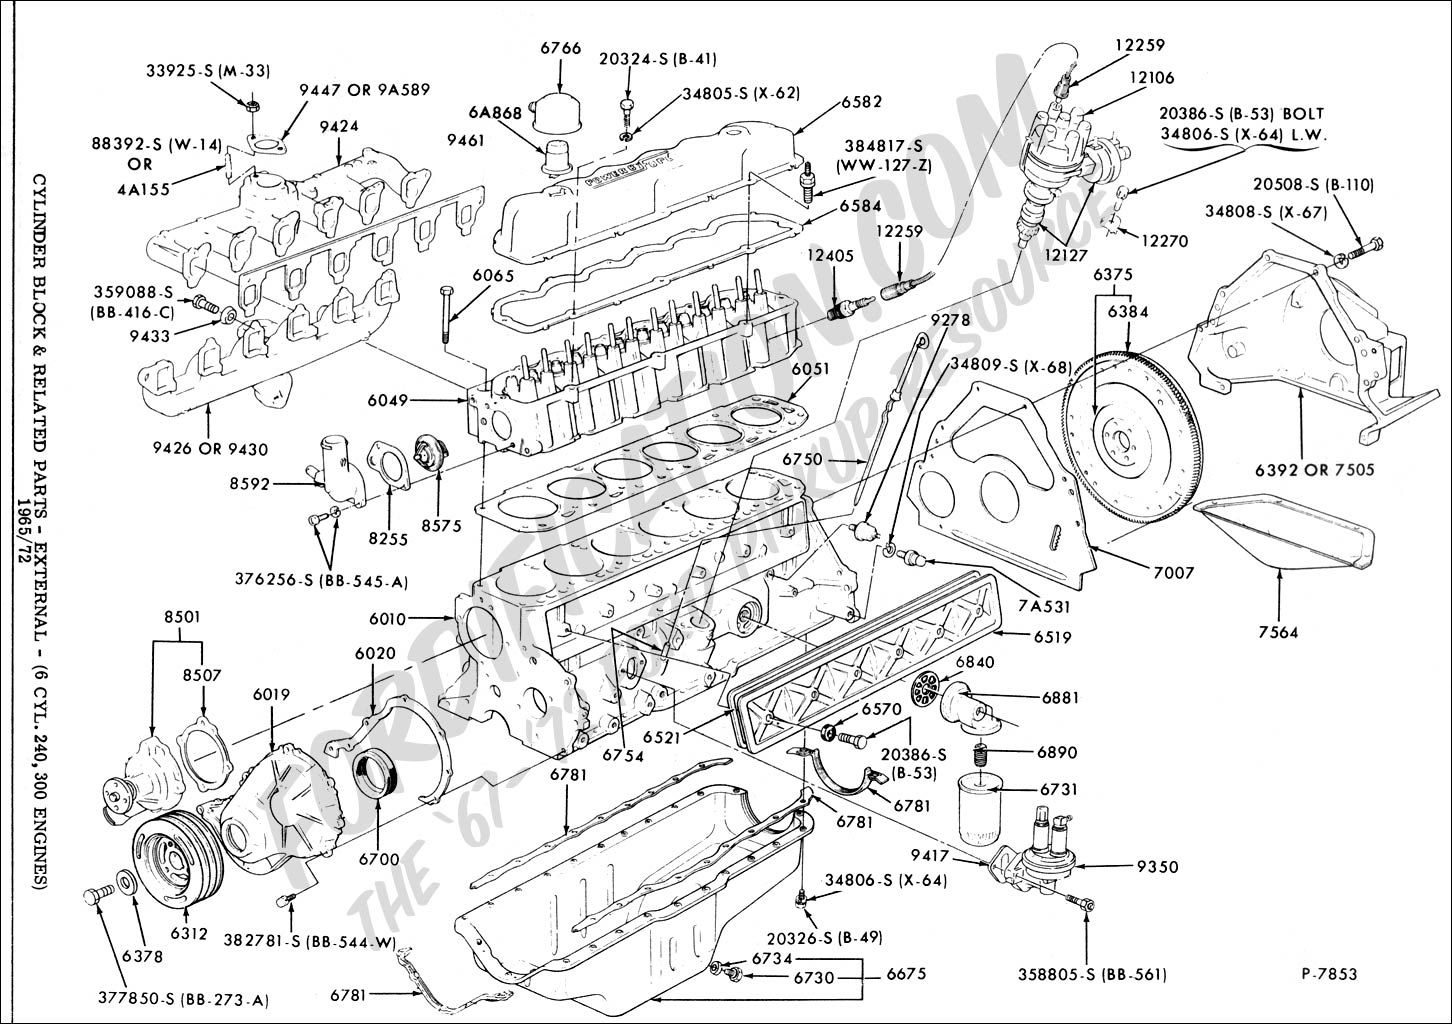 1970 ford 302 engine diagram wiring diagram toolbox 2013 mustang gt parts diagram 1970 ford 302 [ 1452 x 1024 Pixel ]